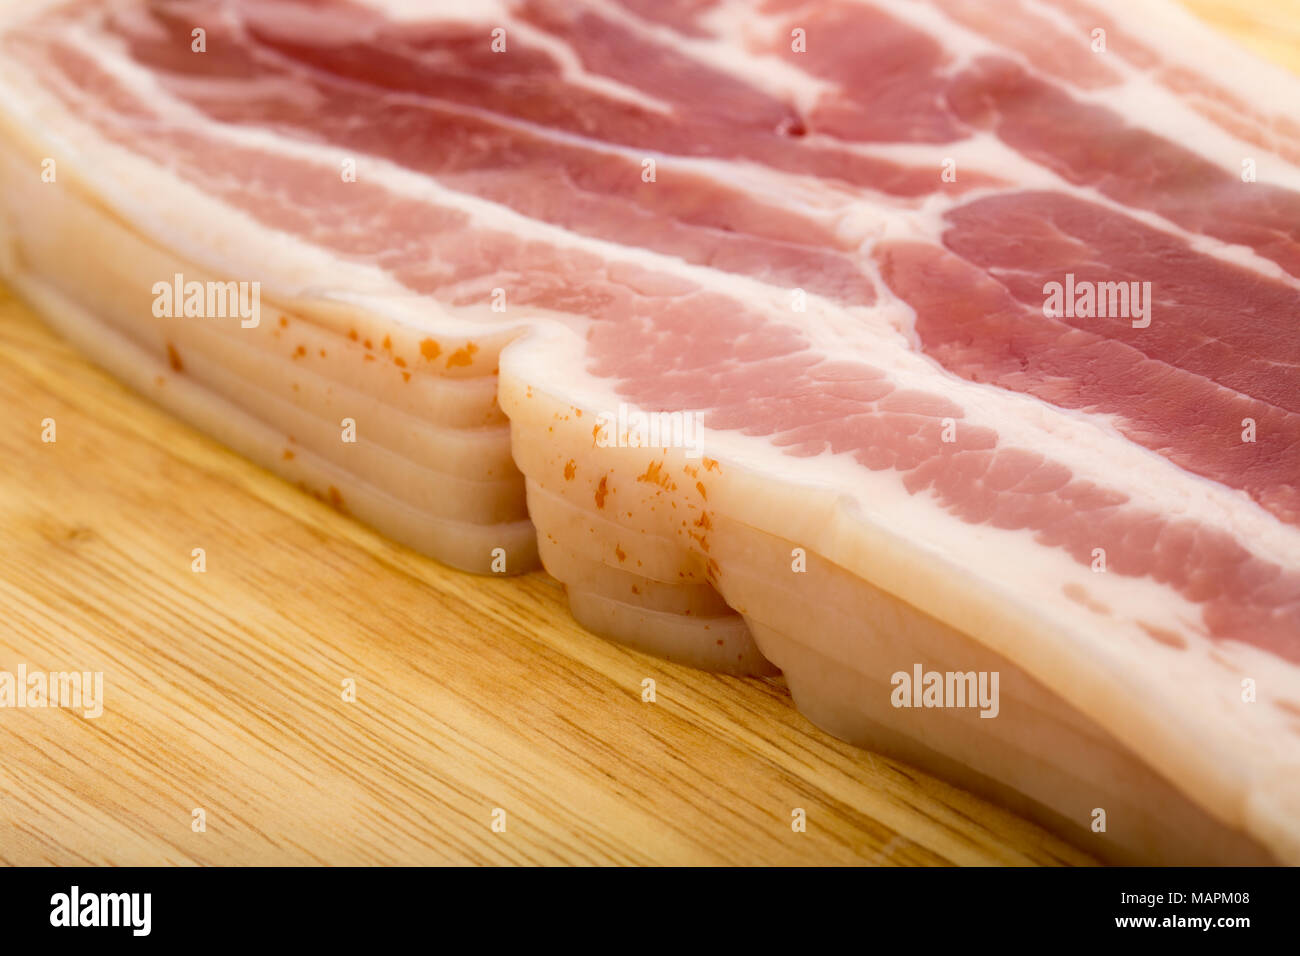 Unsmoked rashers of streaky bacon produced in the EU from a supermarket. Dorset England UK - Stock Image